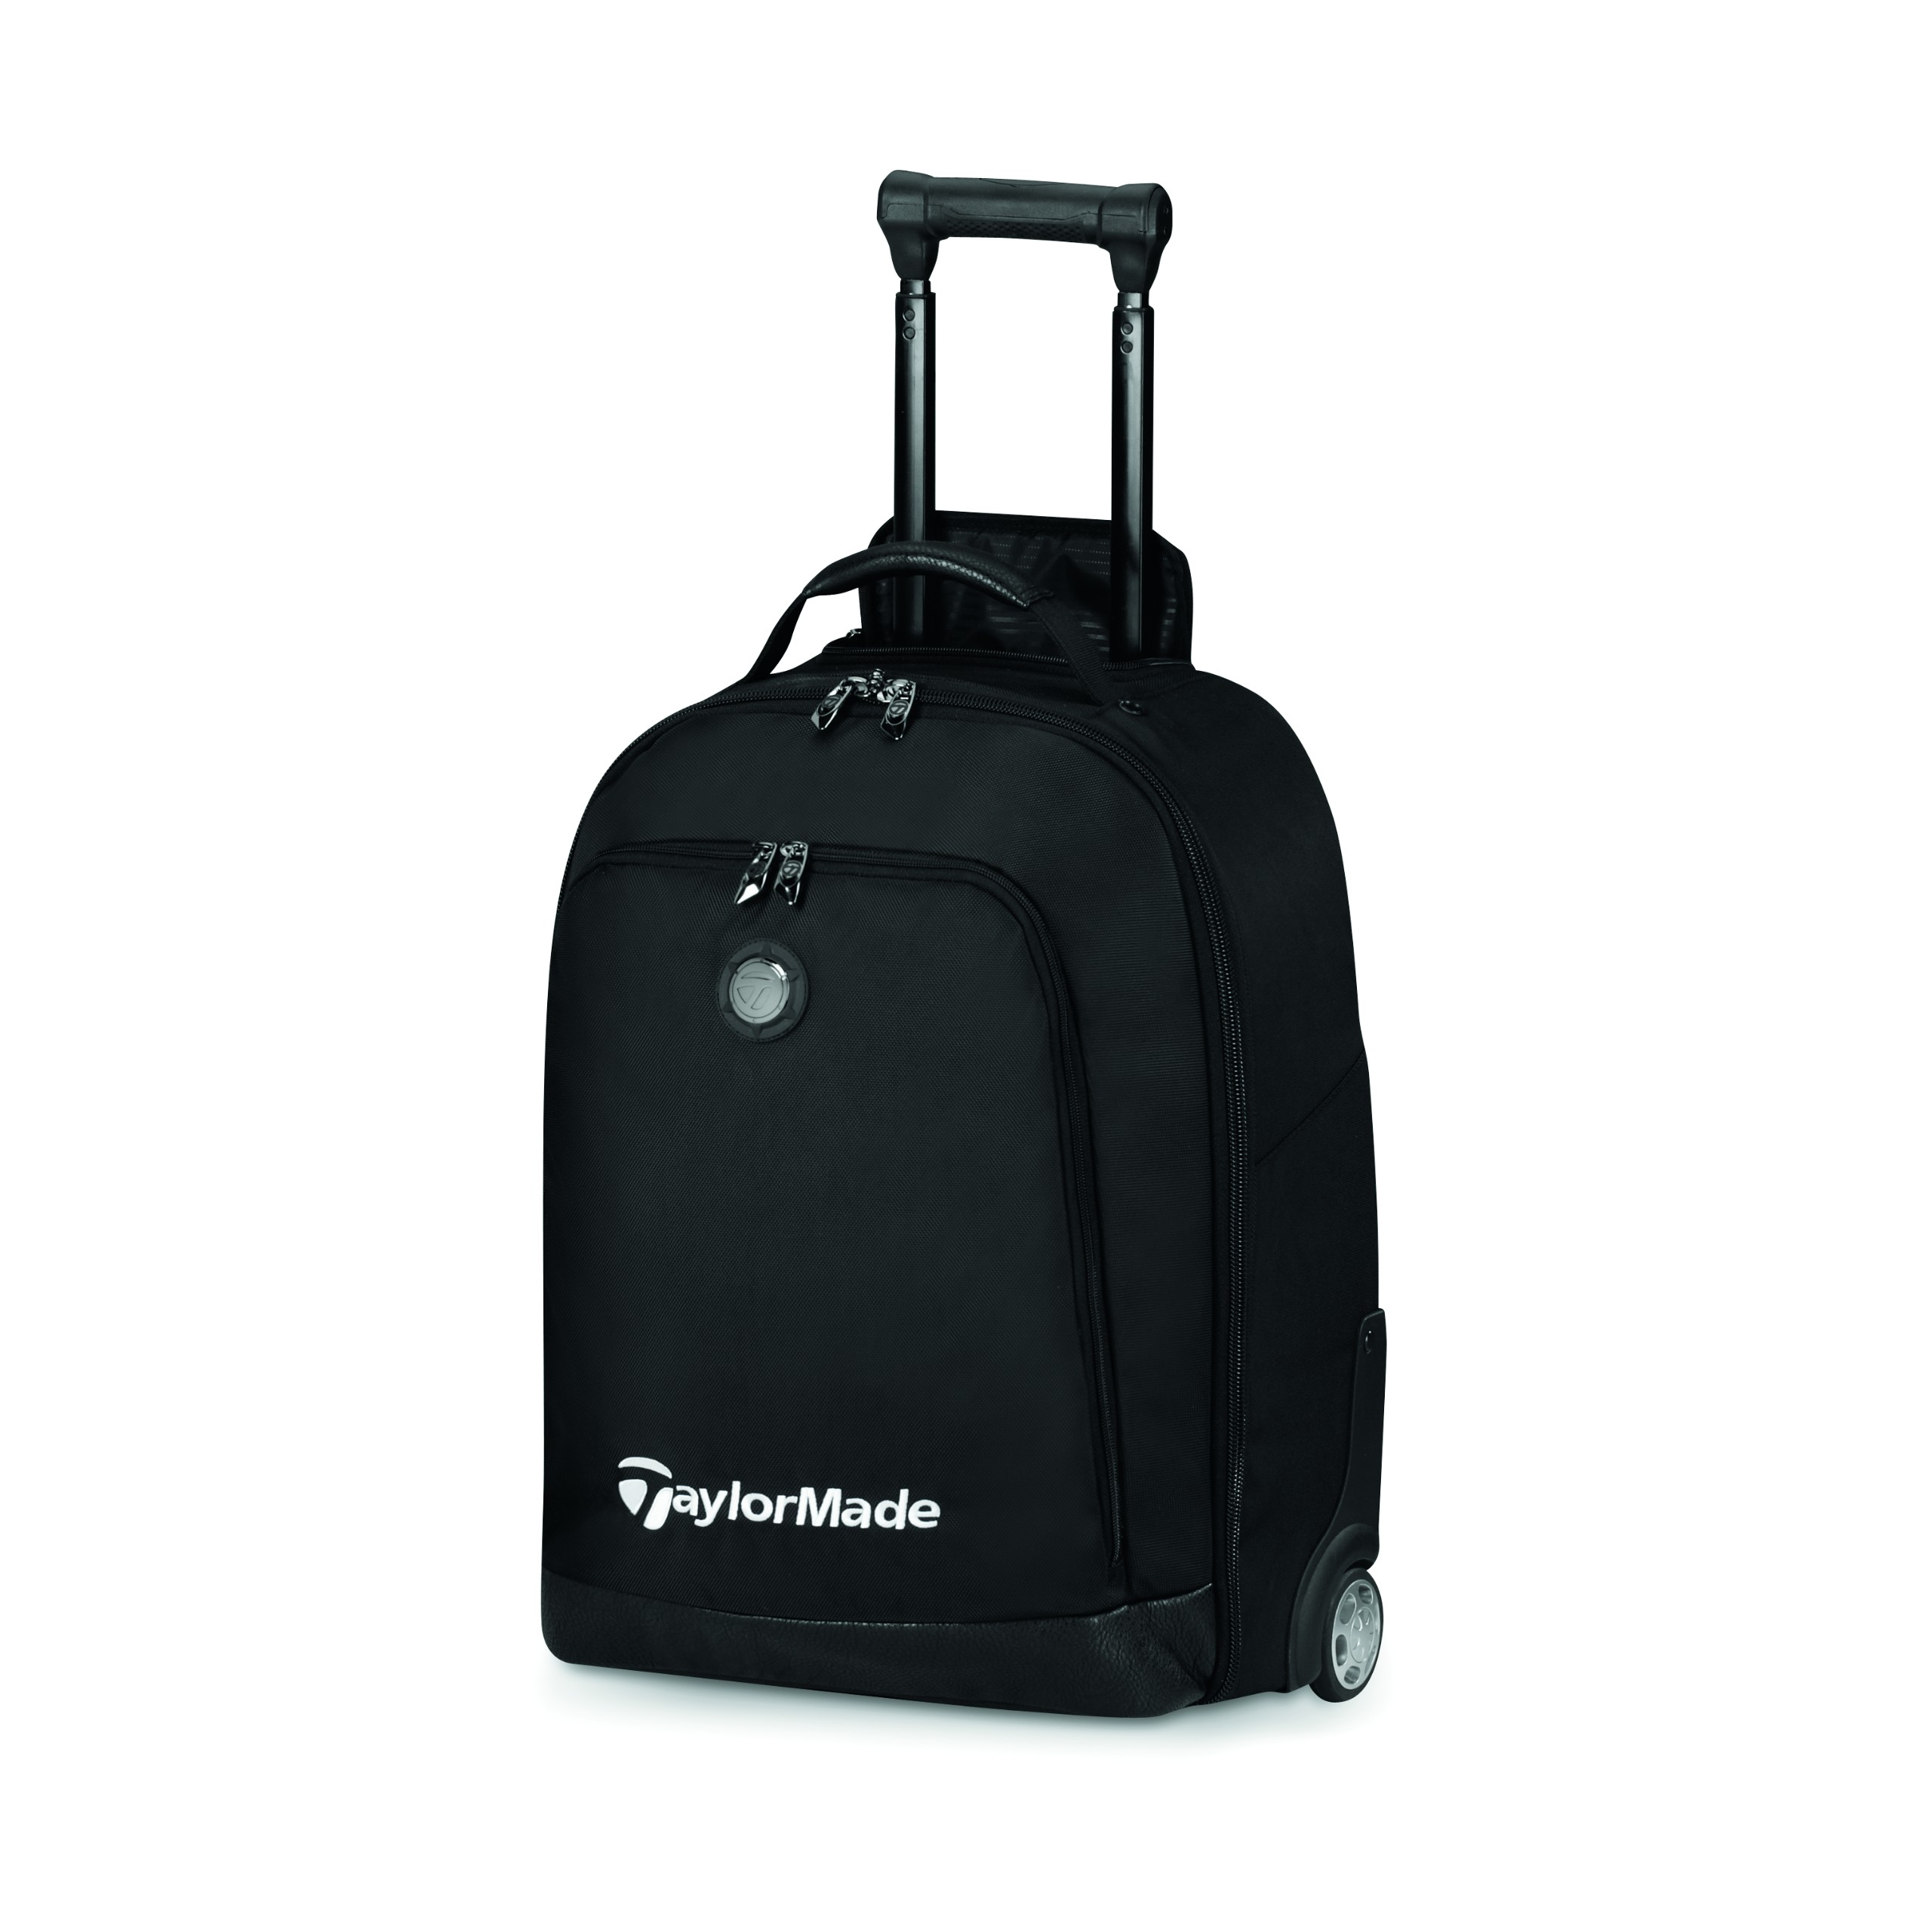 Taylormade Golf Players Rolling Carry On Luggage Bag Black